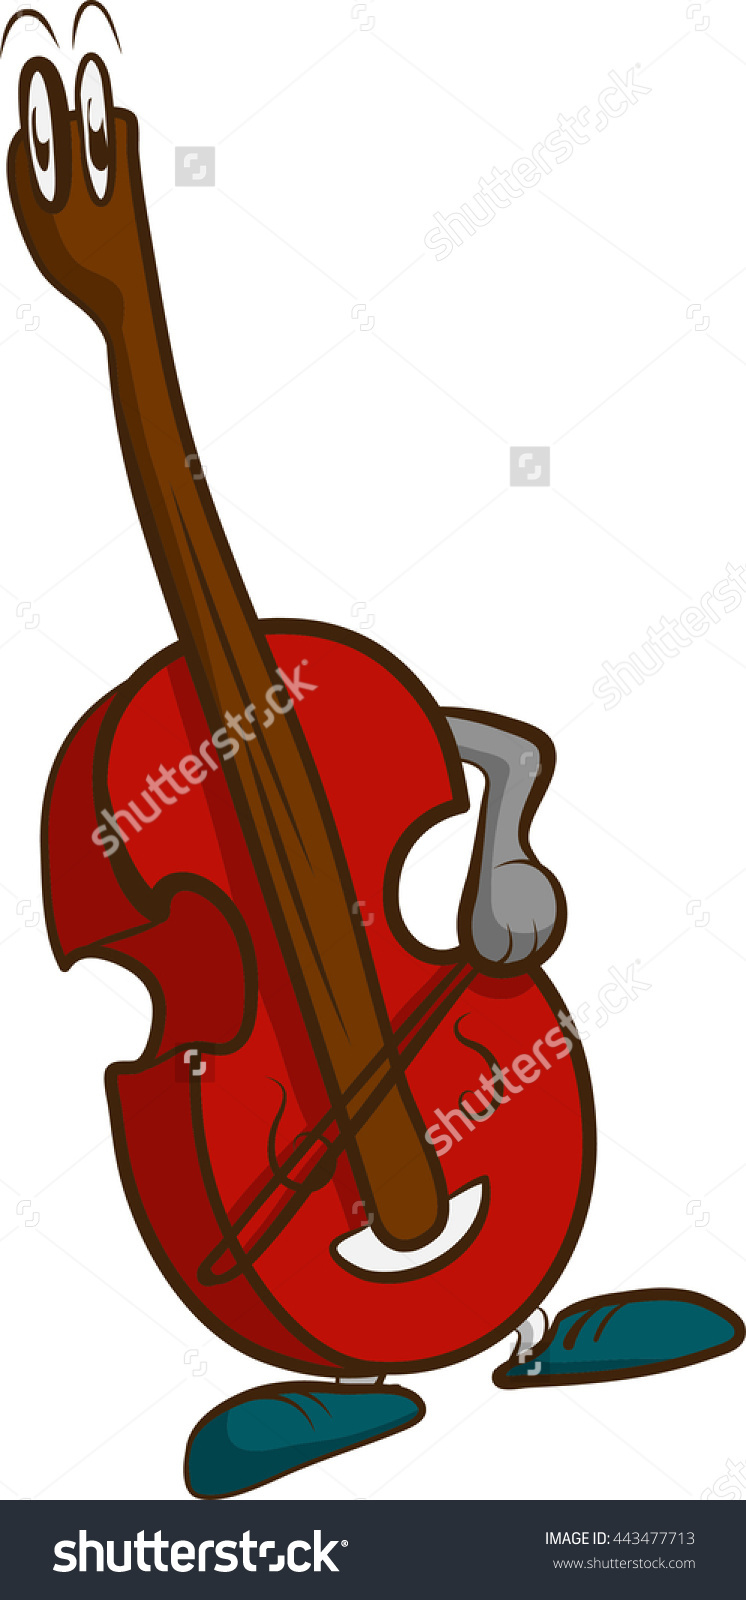 A Self Playing Bass Stock Vector Illustration 443477713 : Shutterstock.